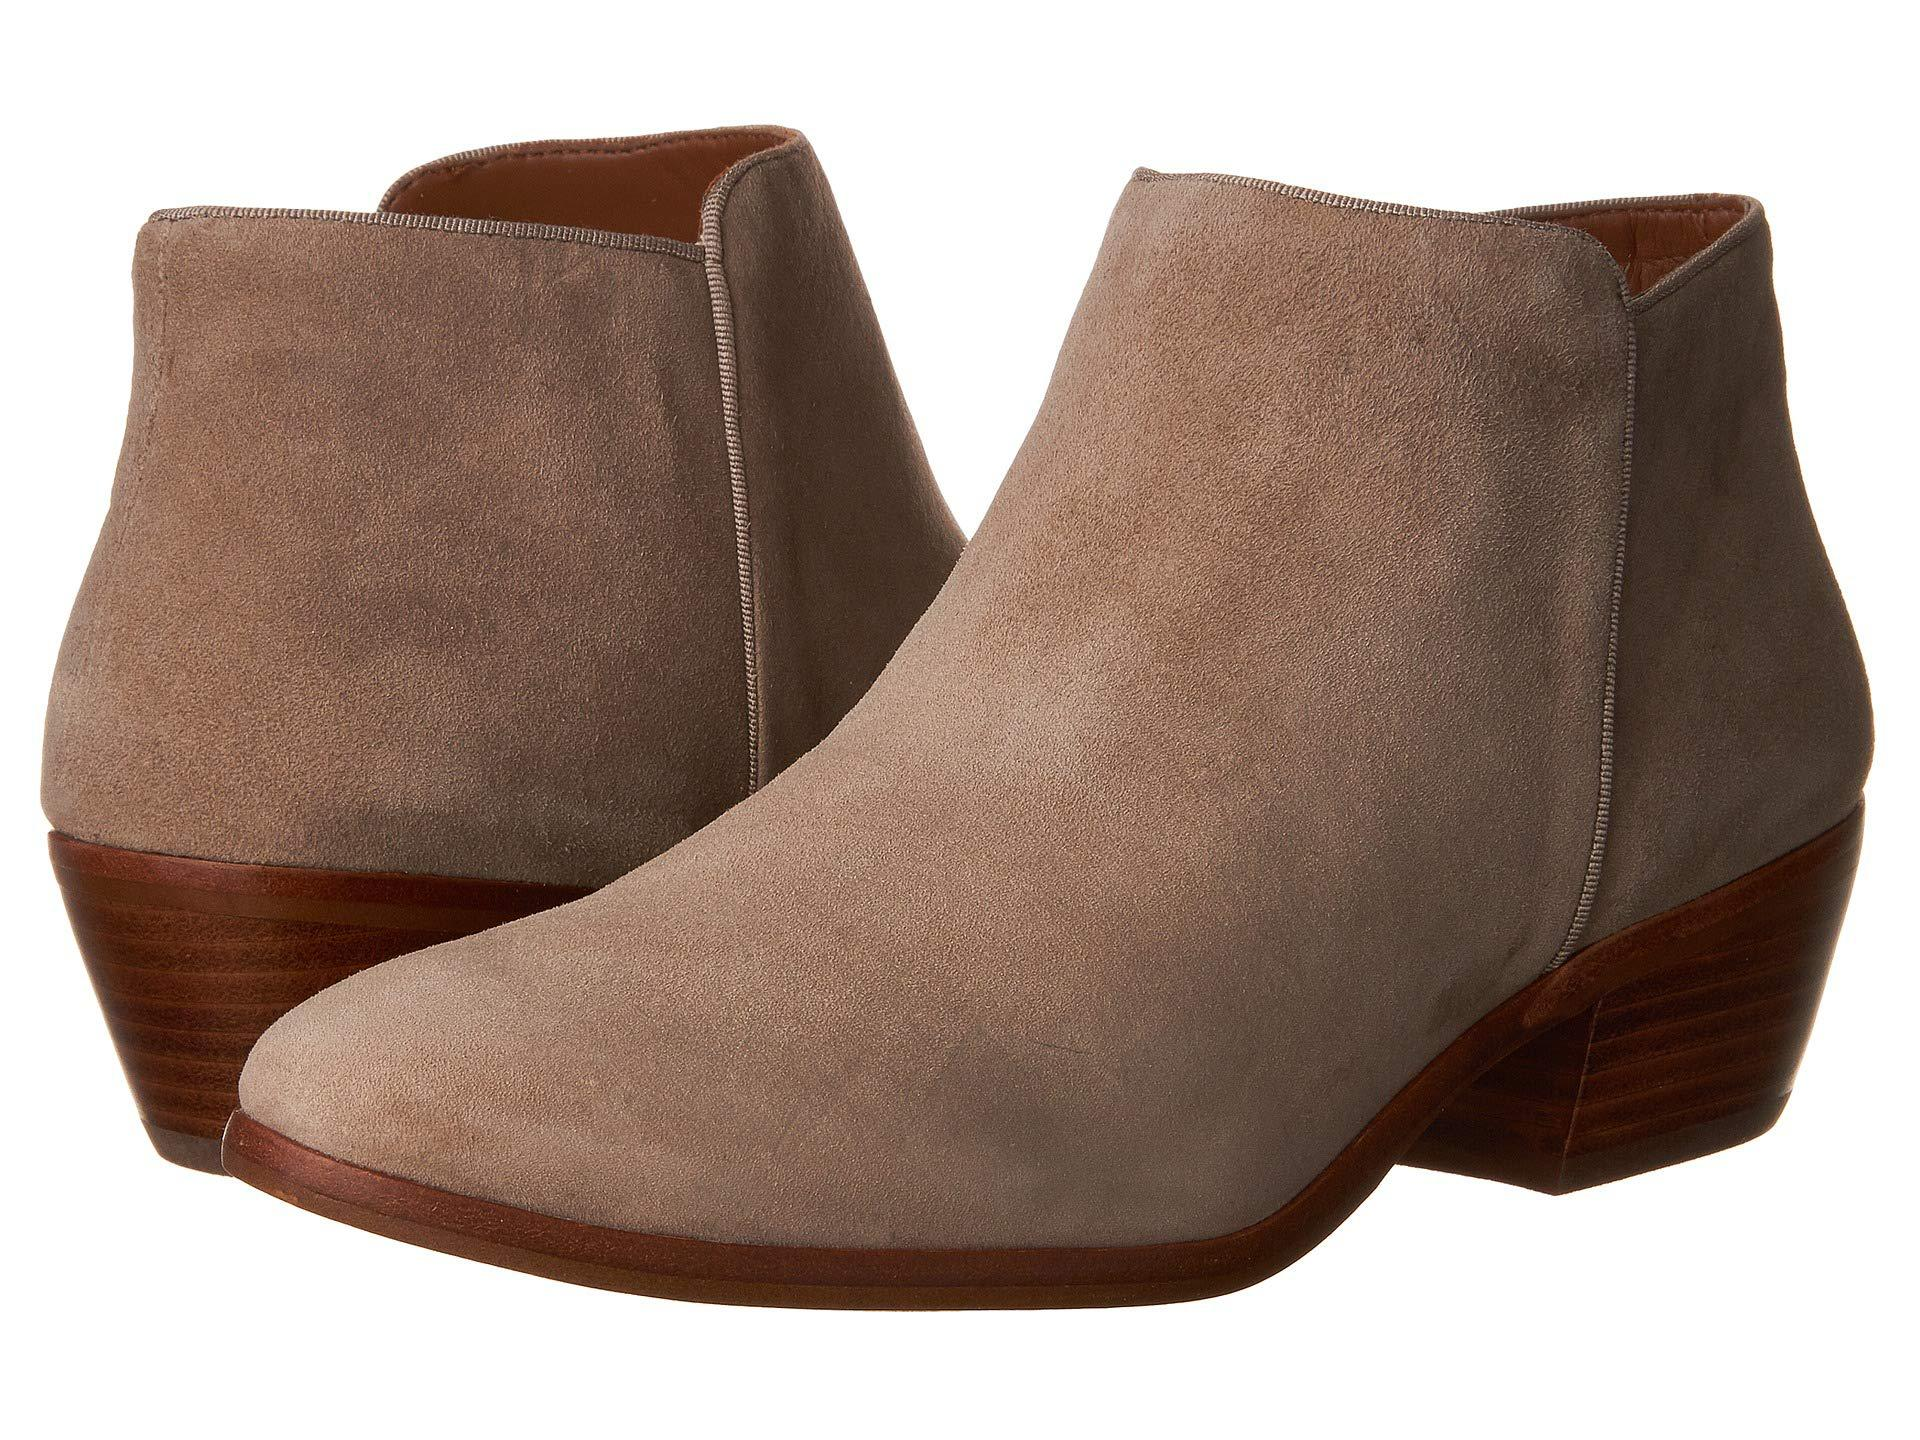 5f4deee29 Lyst - Sam Edelman Petty (putty Suede) Women s Shoes in Brown - Save 29%